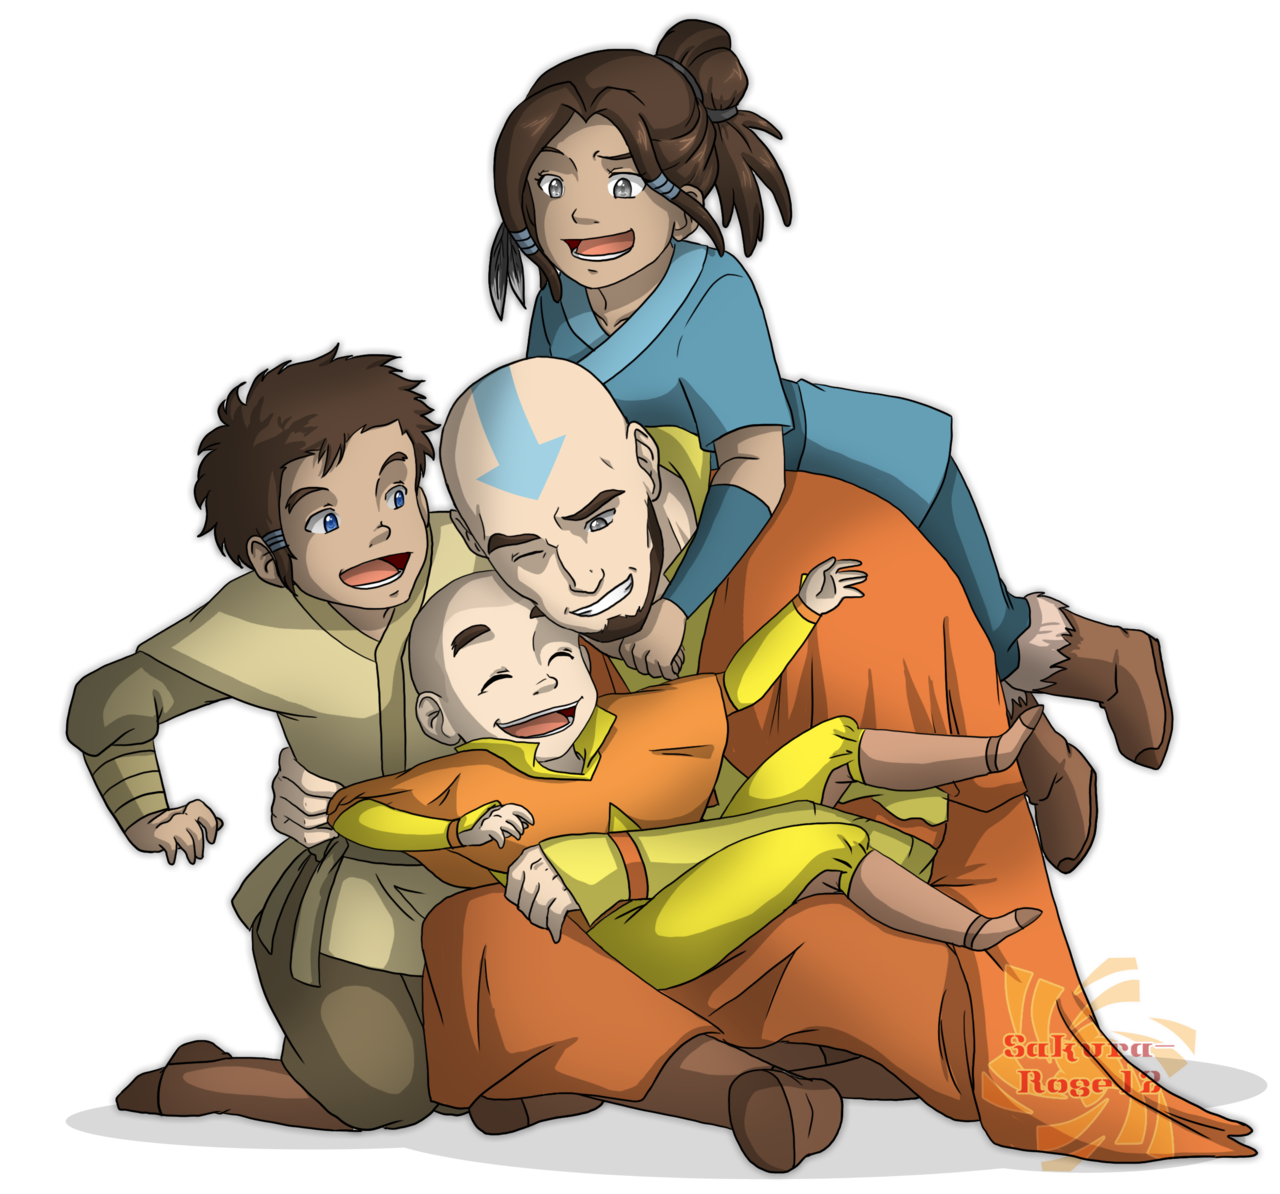 Zuko drawing viria. Aang and his kids